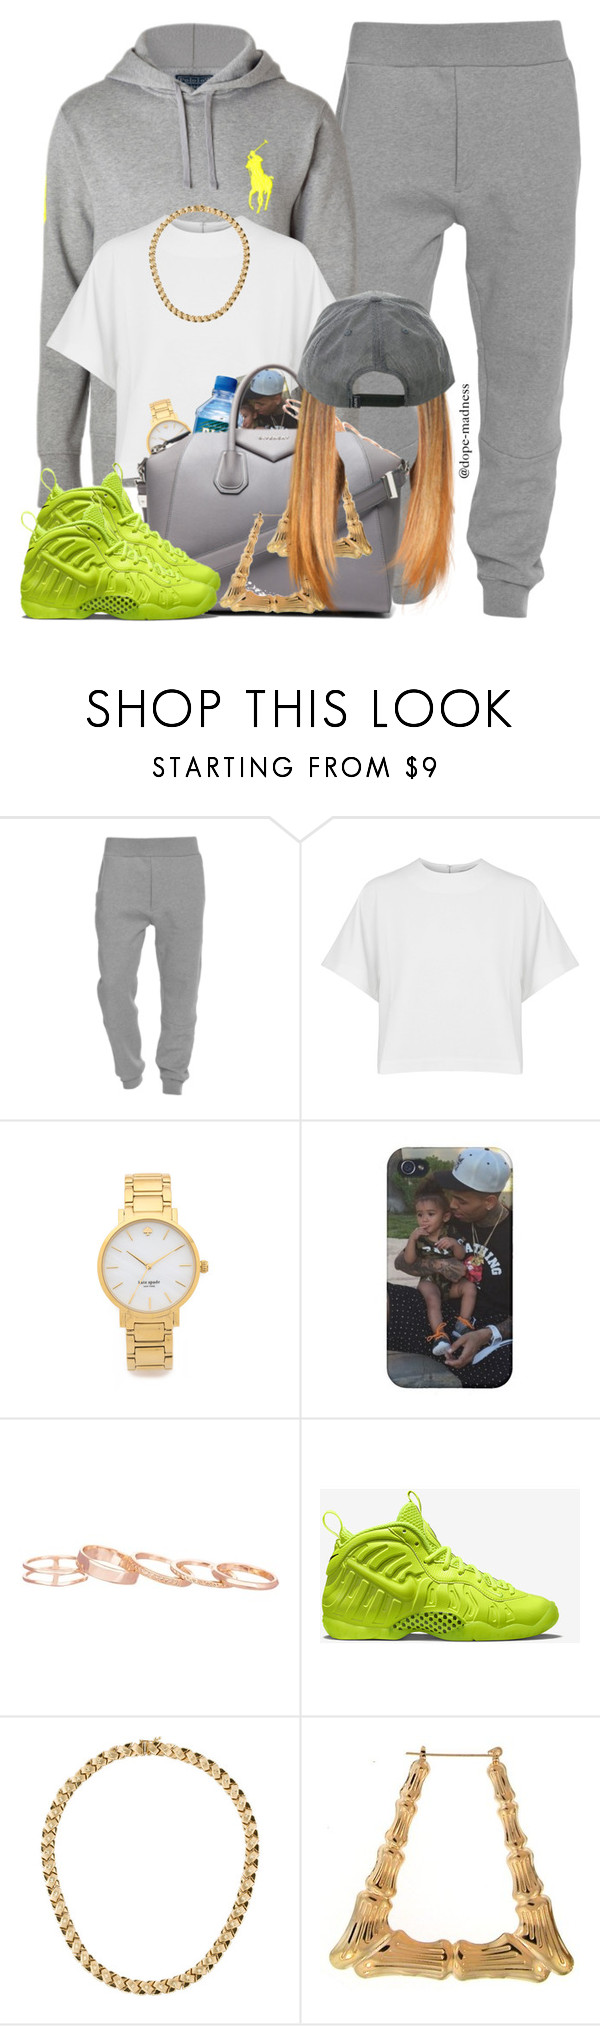 """""""Tyga   Show You"""" by dope-madness ❤ liked on Polyvore featuring Acne Studios, dVb Victoria Beckham, Kate Spade, Kendra Scott, Givenchy and NIKE"""